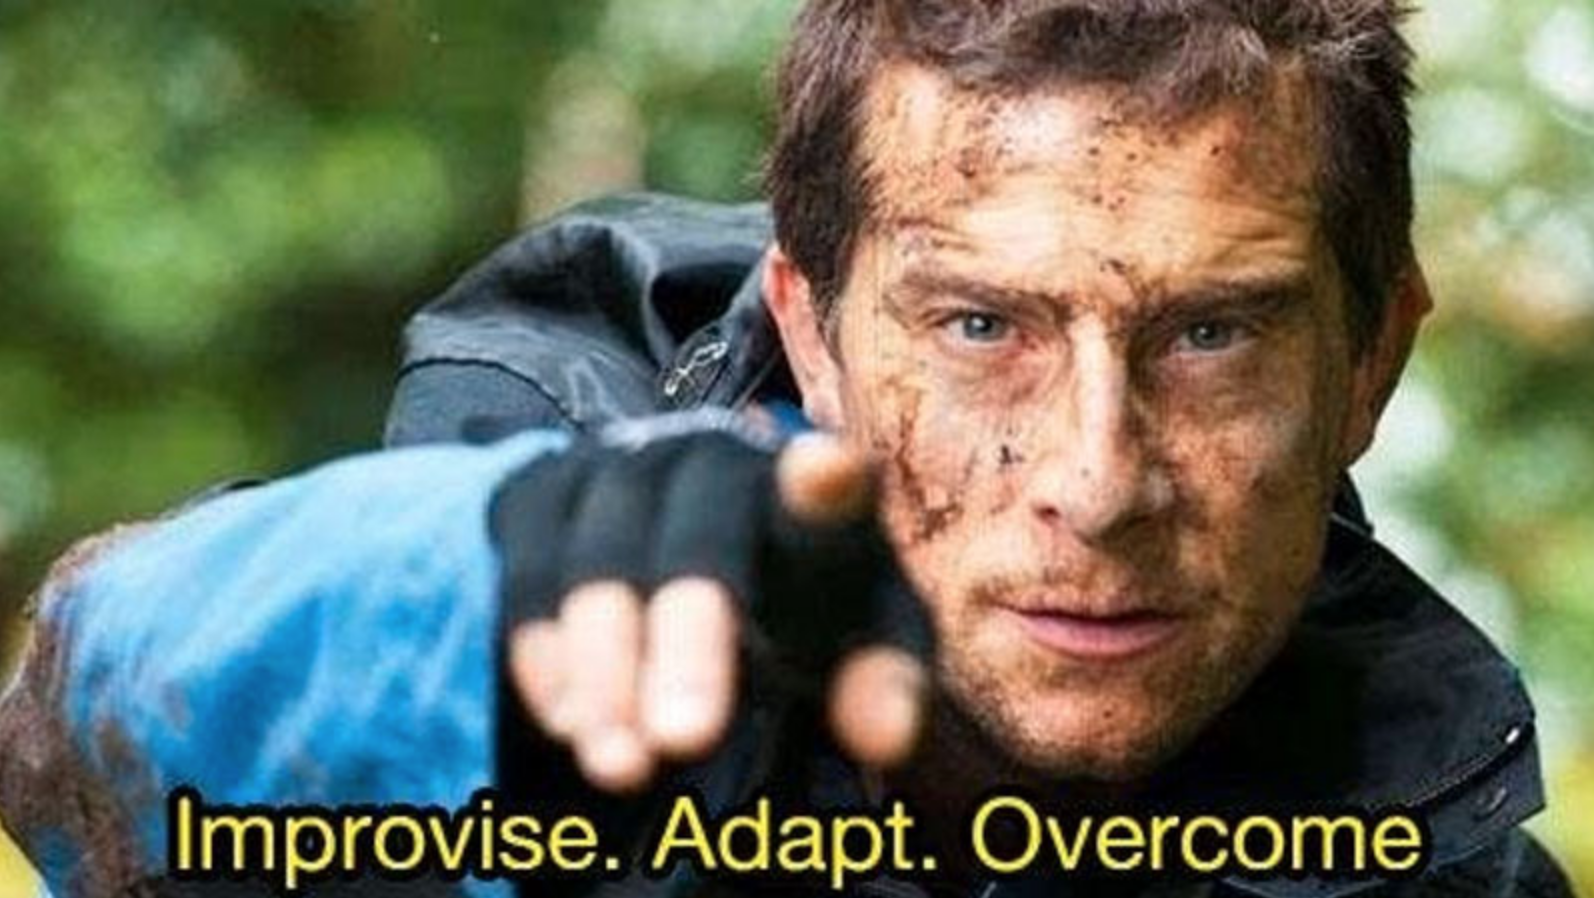 Bear Grylls Adapt Improvise Overcome Meme//nota pupitres anti-covid